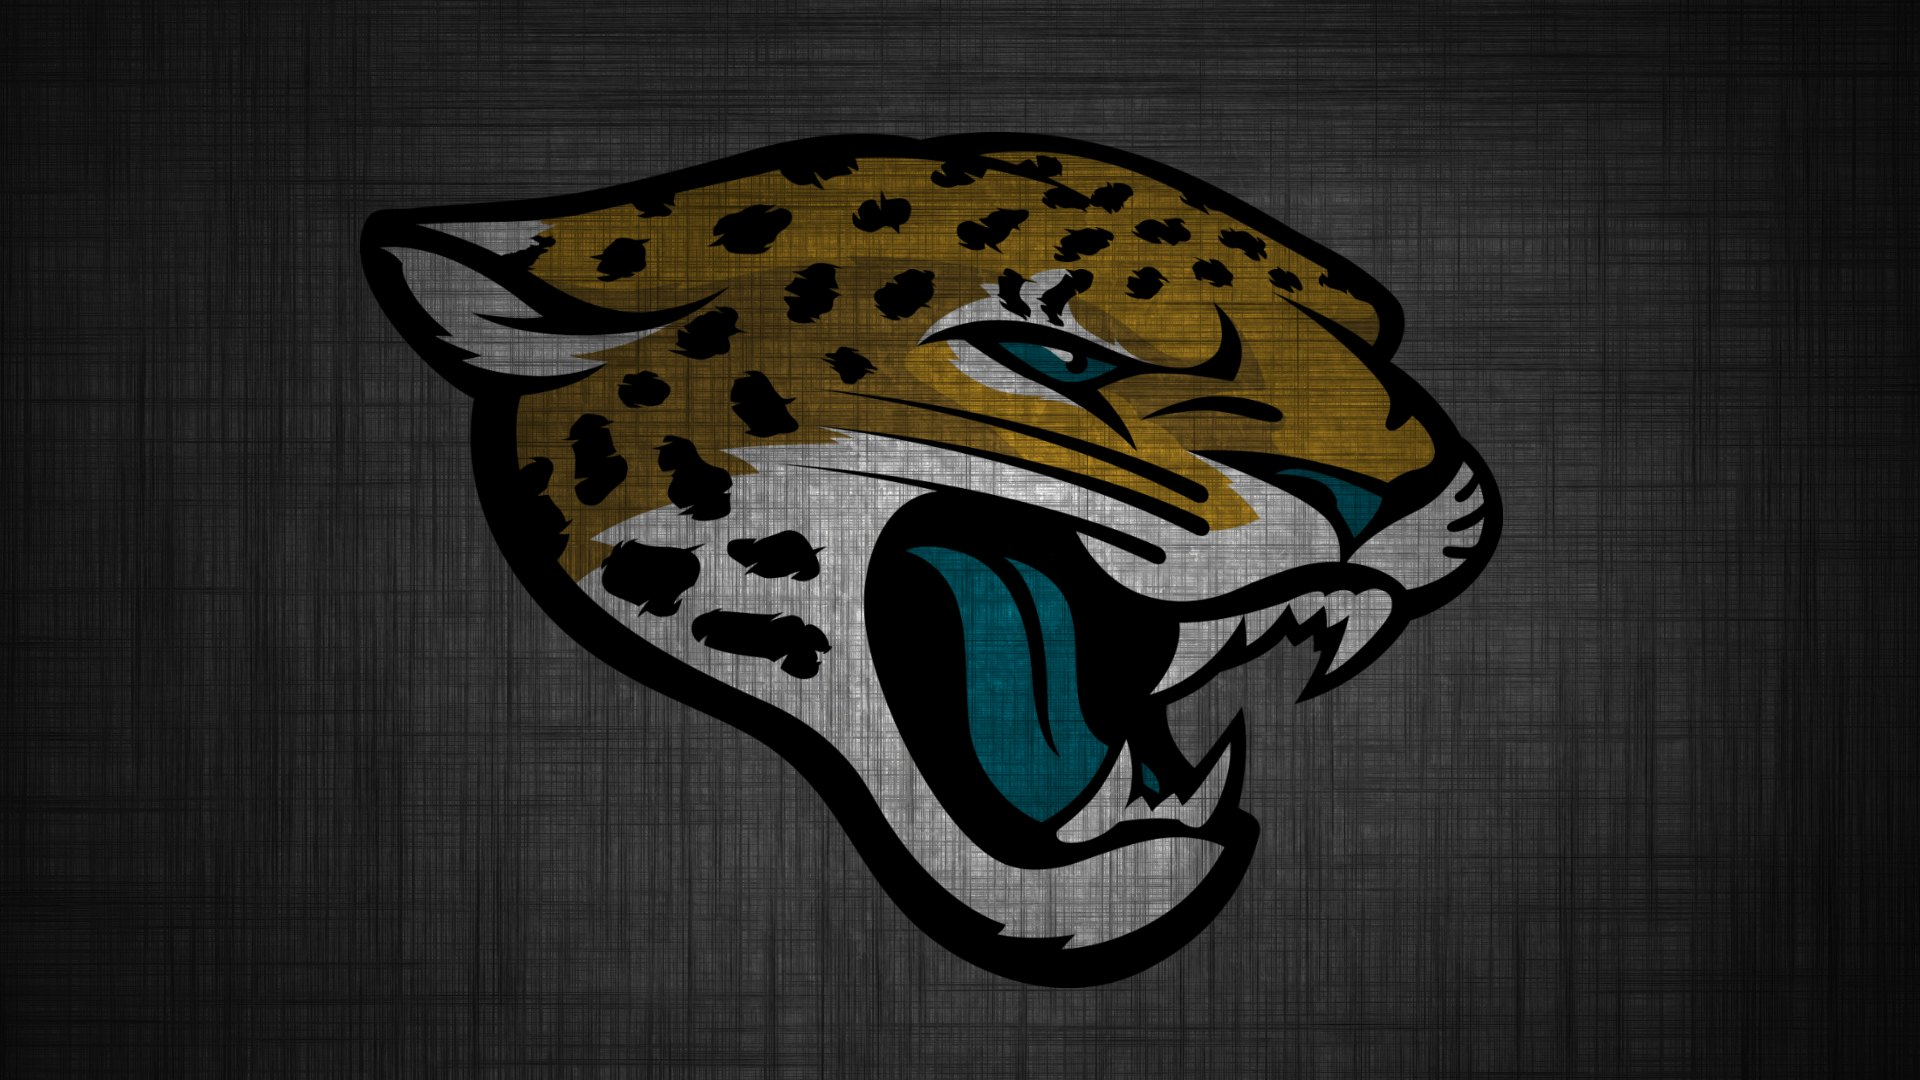 jacksonville jaguars new logo wallpapers - photo #15